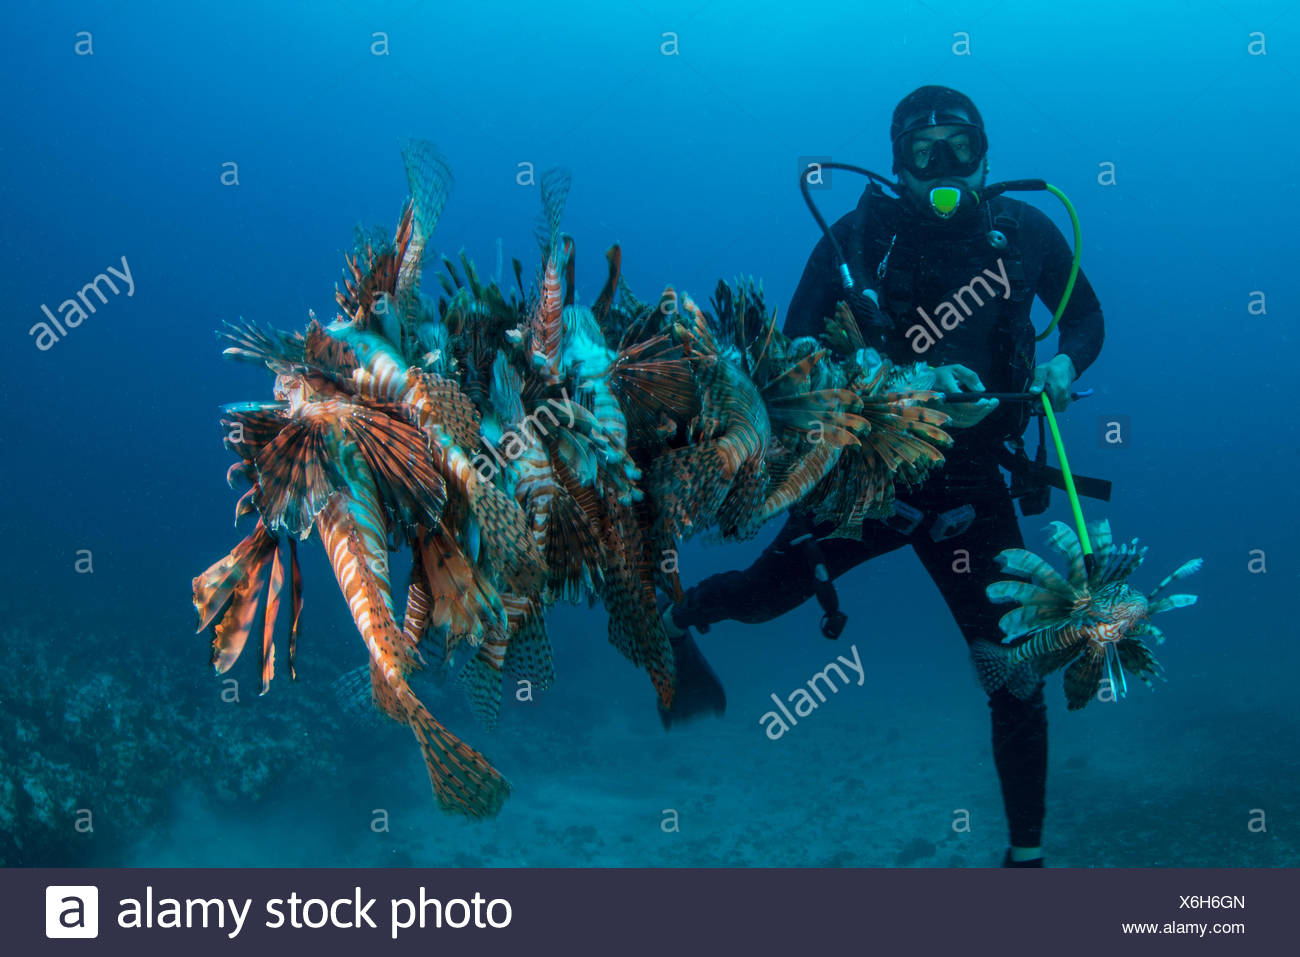 Diver collects invasive lionfish from local reef - Stock Image